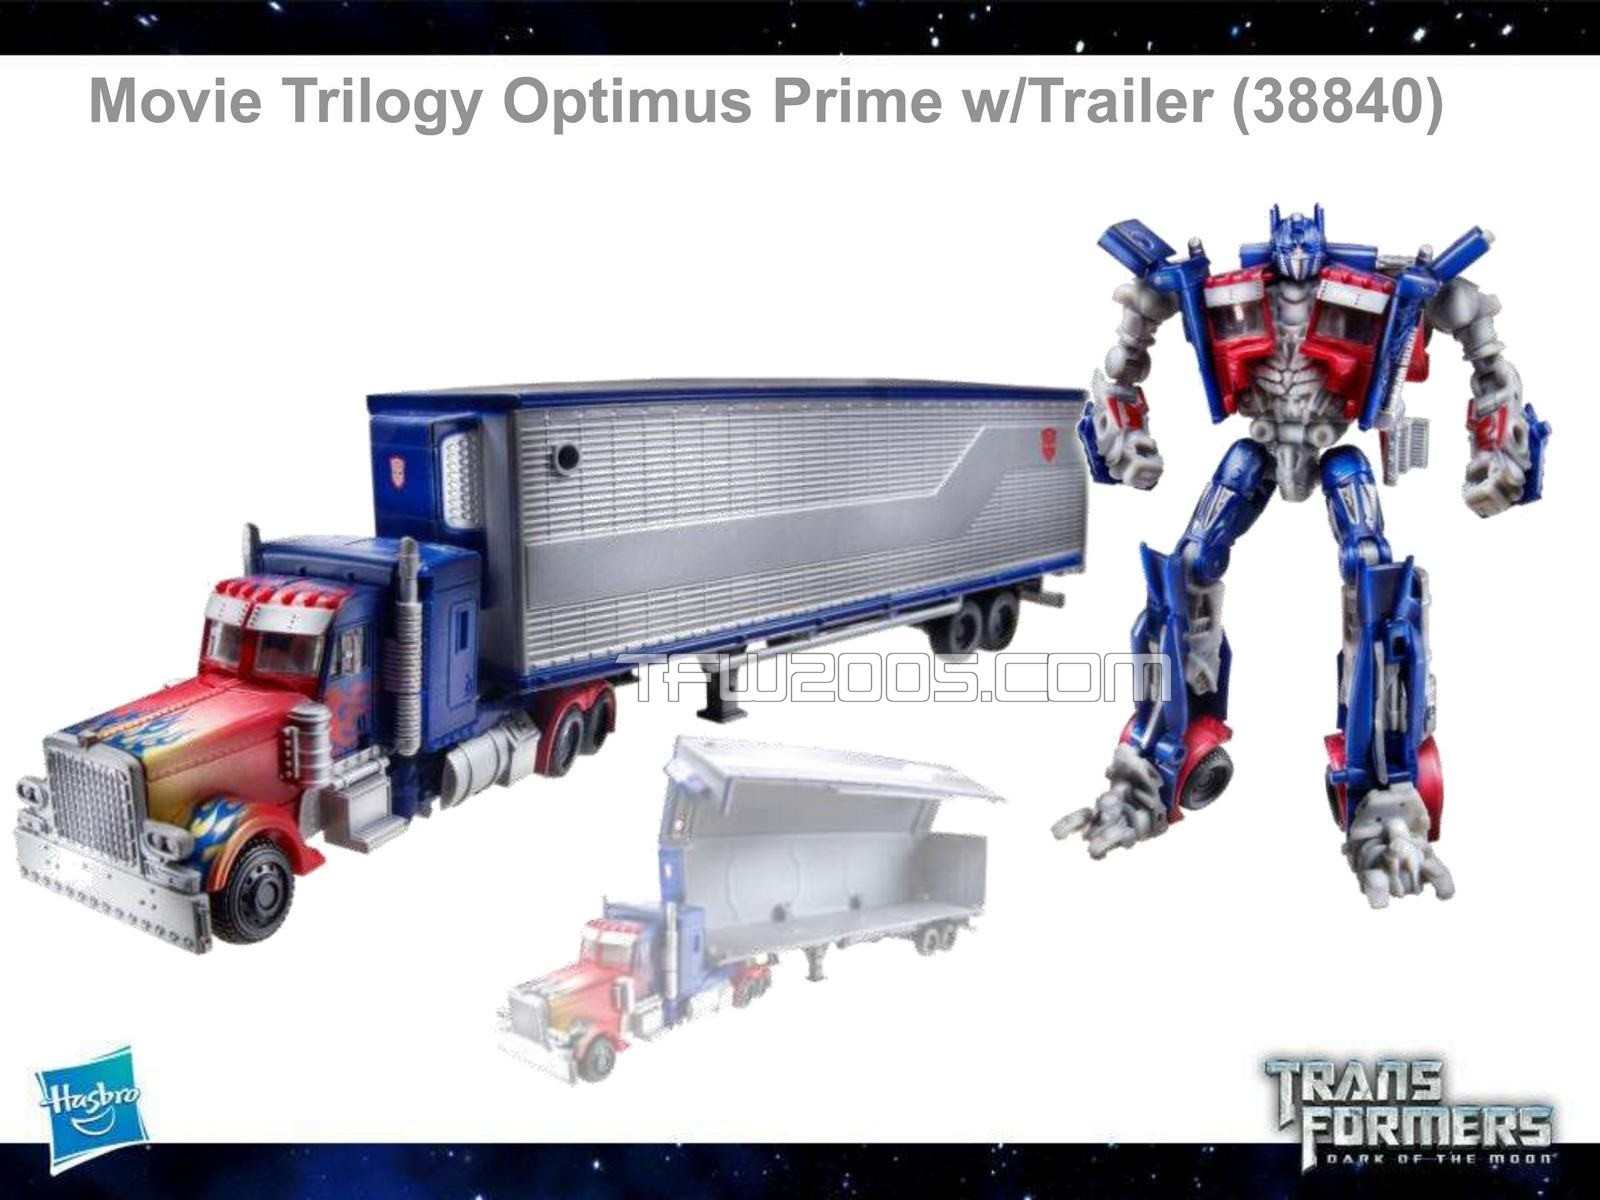 Optimus Prime with Trailer (Movie Trilogy) Movie-Trilogy-Optimus-with-Trailer